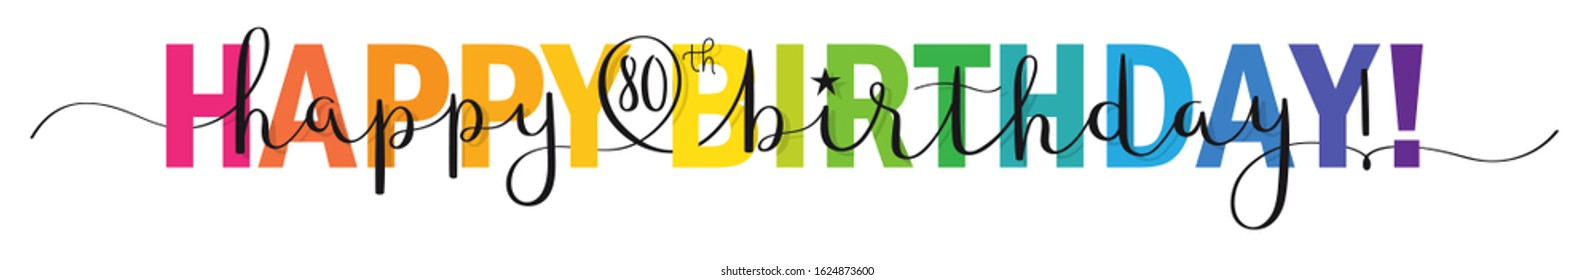 HAPPY 80th BIRTHDAY! colorful vector mixed typography banner with brush calligraphy